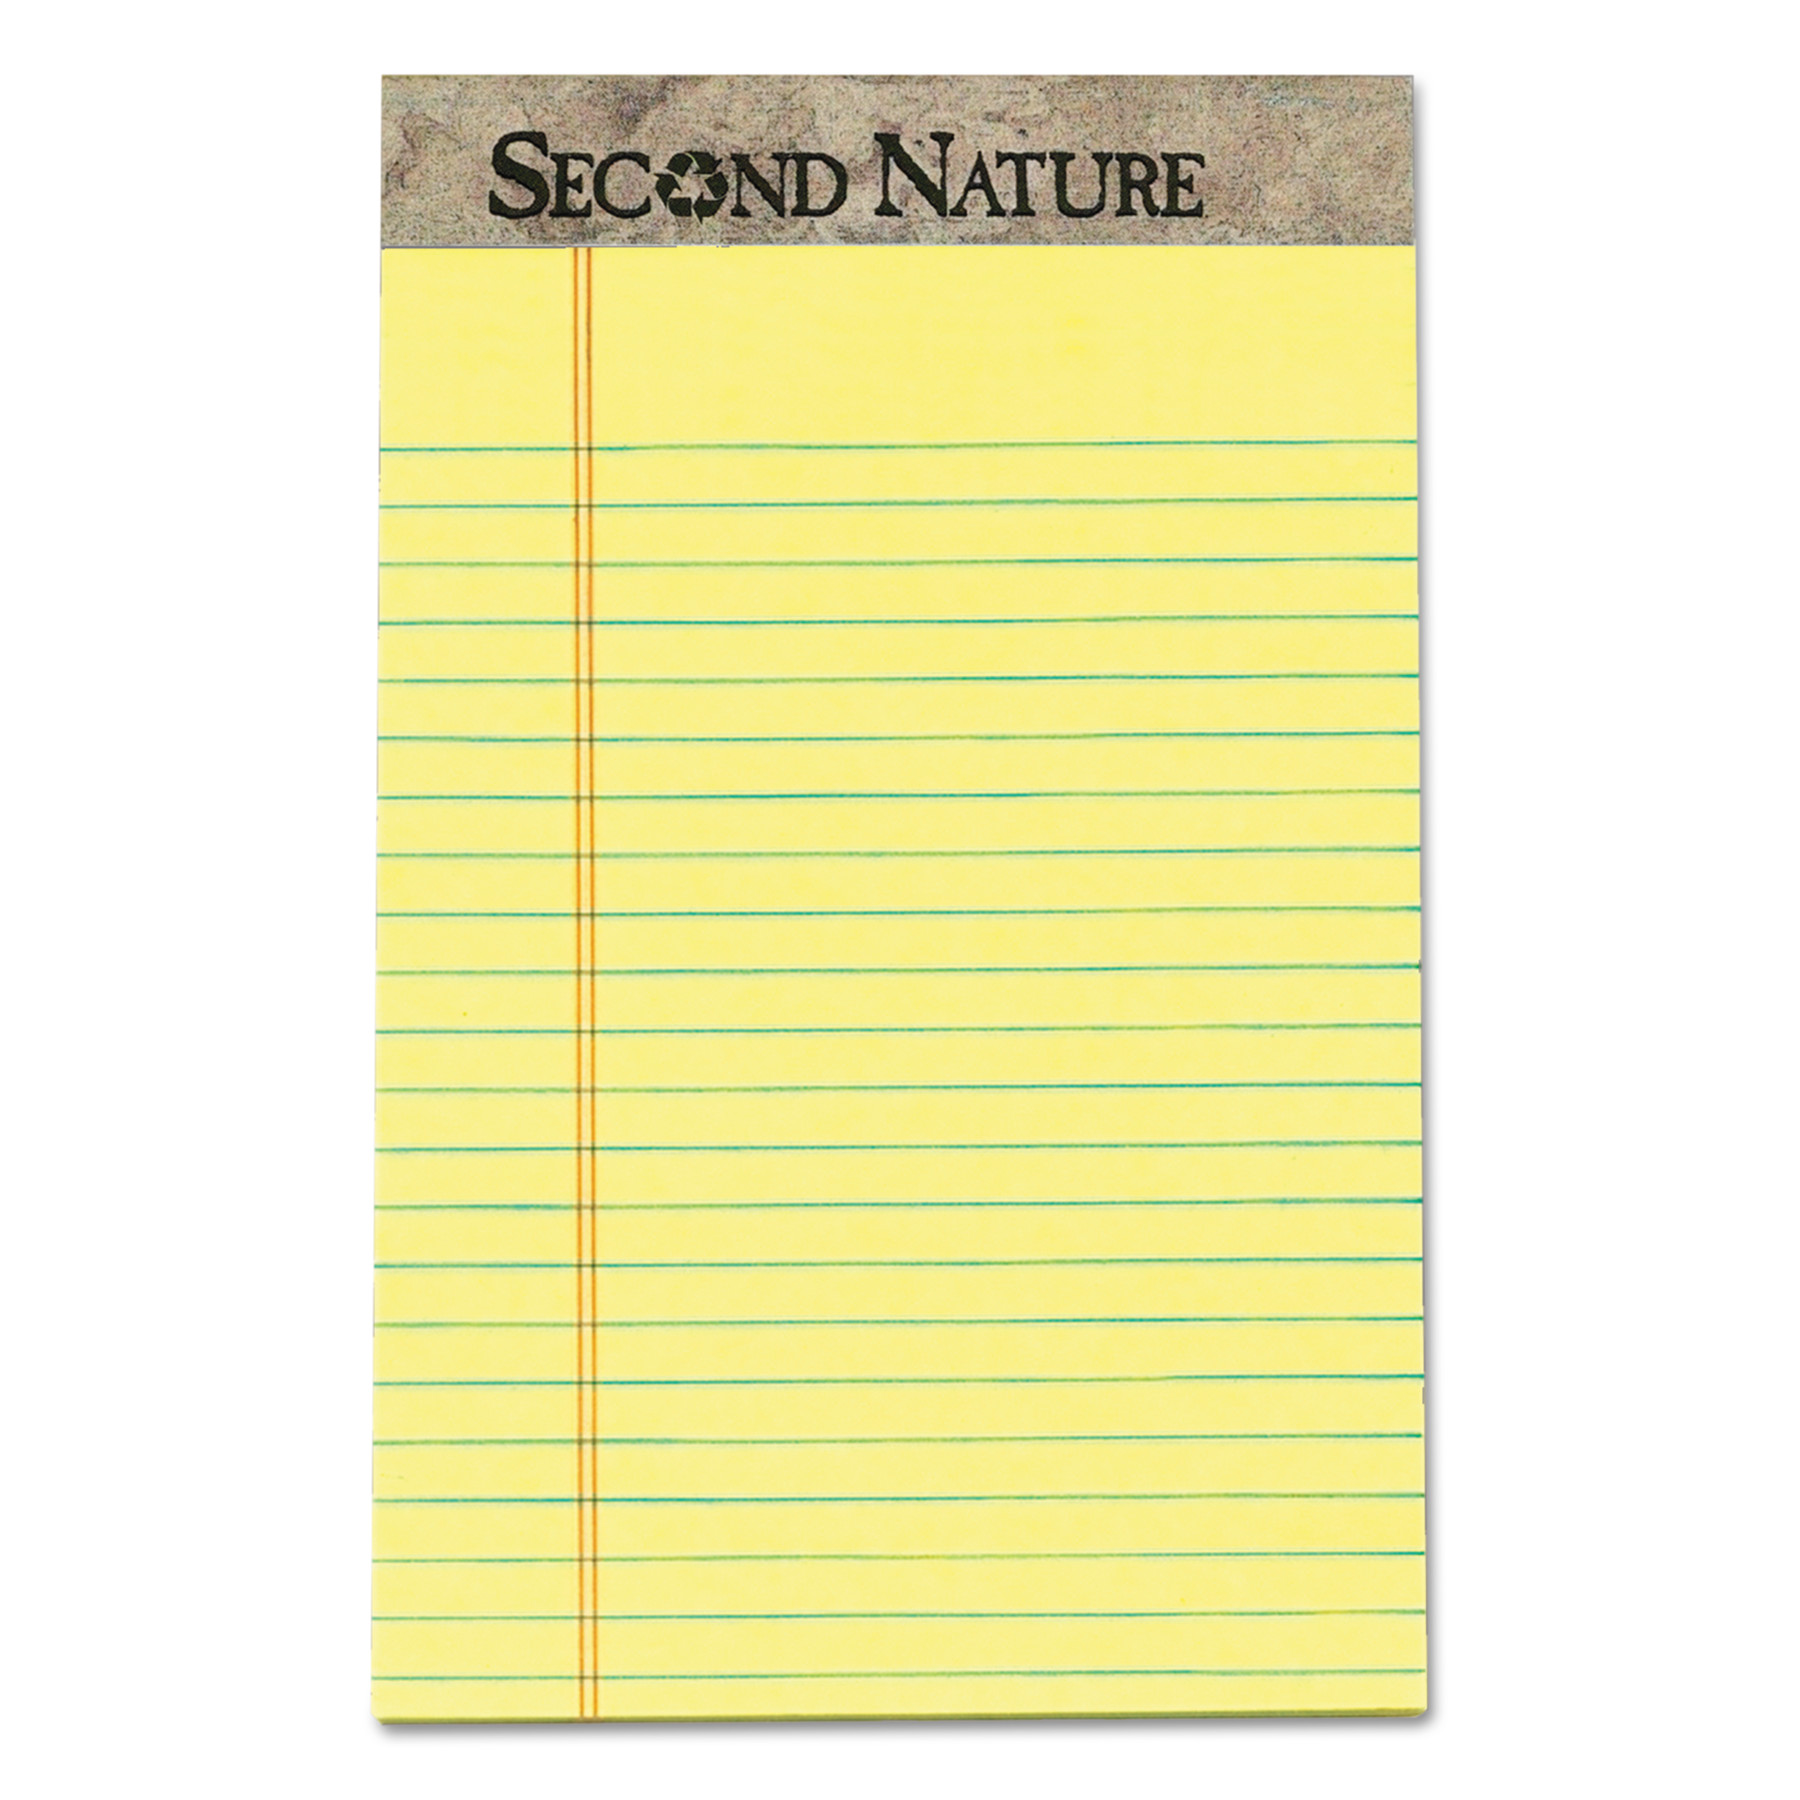 "TOPS Second Nature Recycled Pad, Jr. Legal, 5"" x 8"", Canary, 50 Sheets per Pad, 12-Pack"